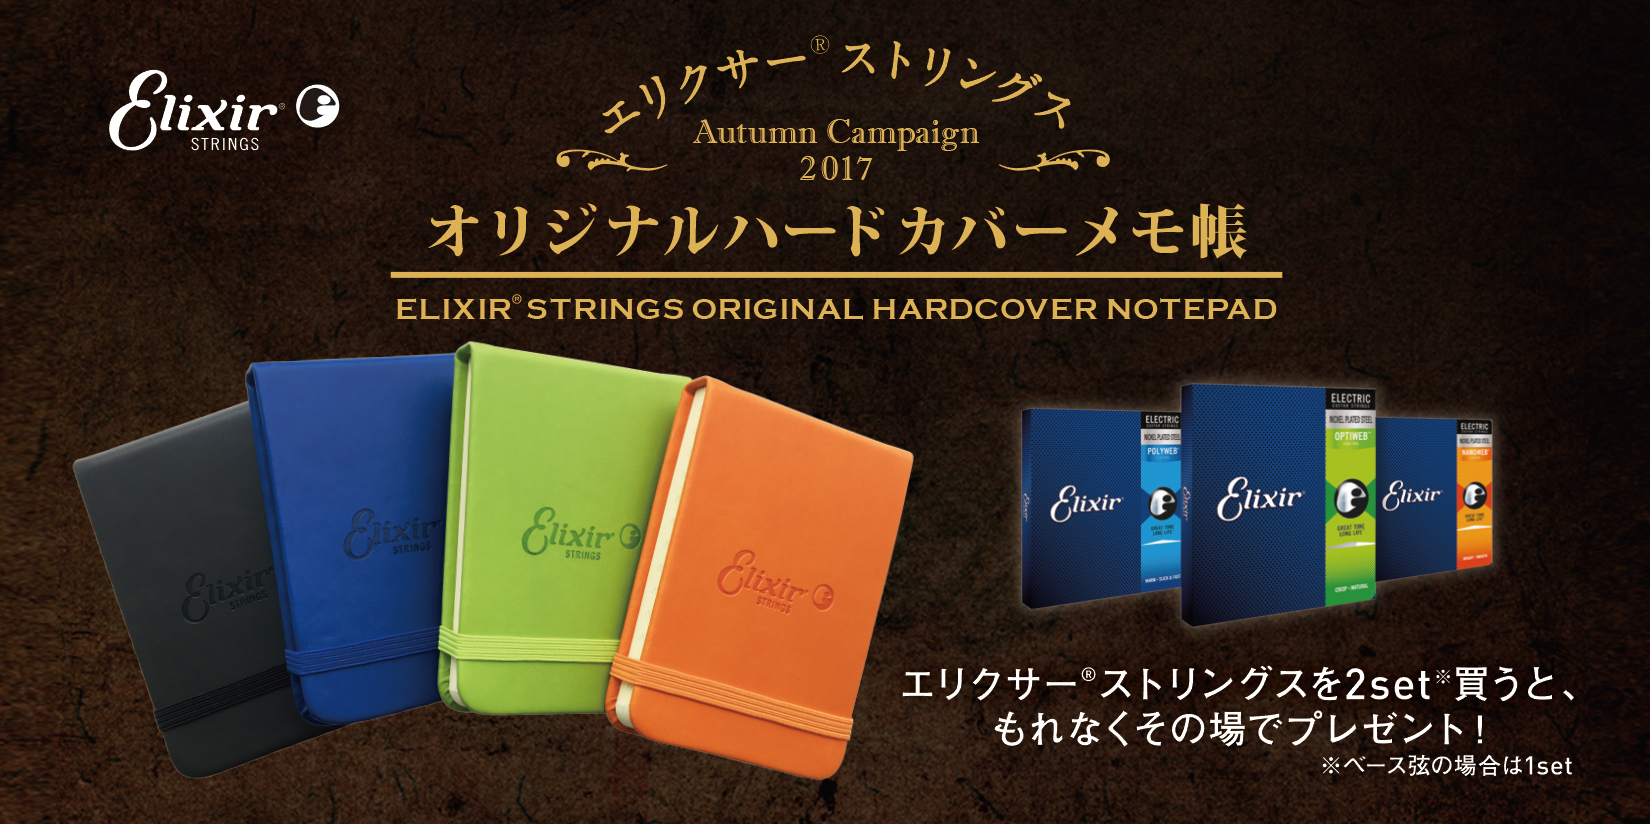 http://www.sumiya-goody.co.jp/shopblog/headoffice/AG_ELIXER_201711_00.jpg